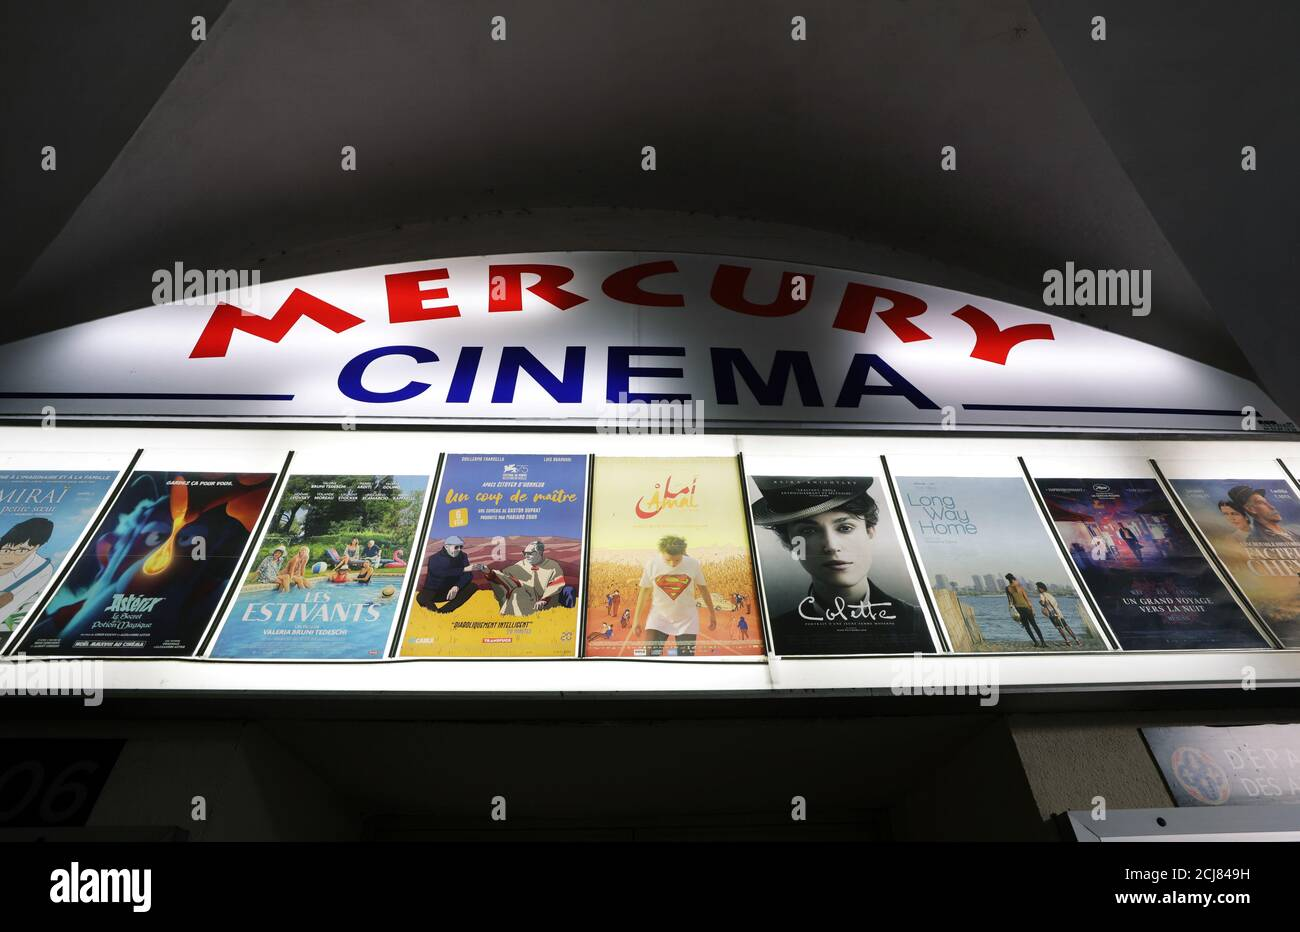 Movie posters are seen outside the cinema Mercury in Nice, France